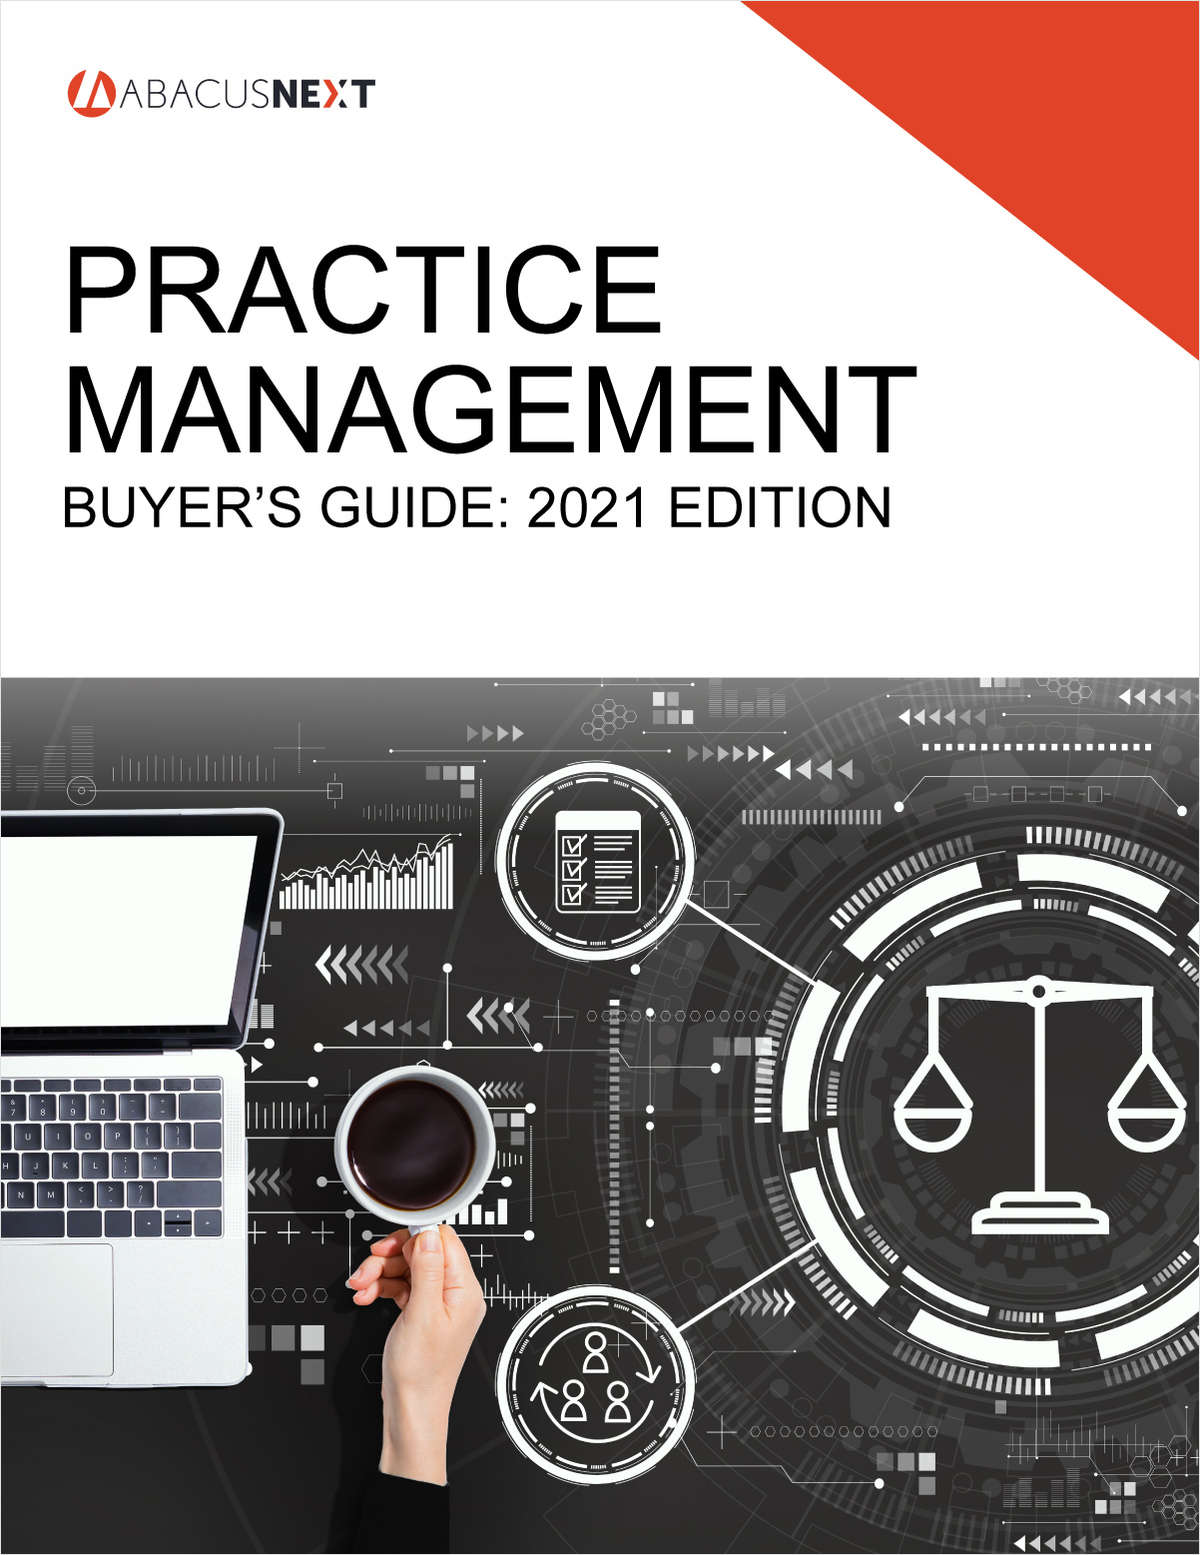 The most efficient practices are run with a flexible case management technology, streamlined time and billing, and complete accounting operations. How does your practice stack up? Download this buyer's guide to help take your practice management to the next level.